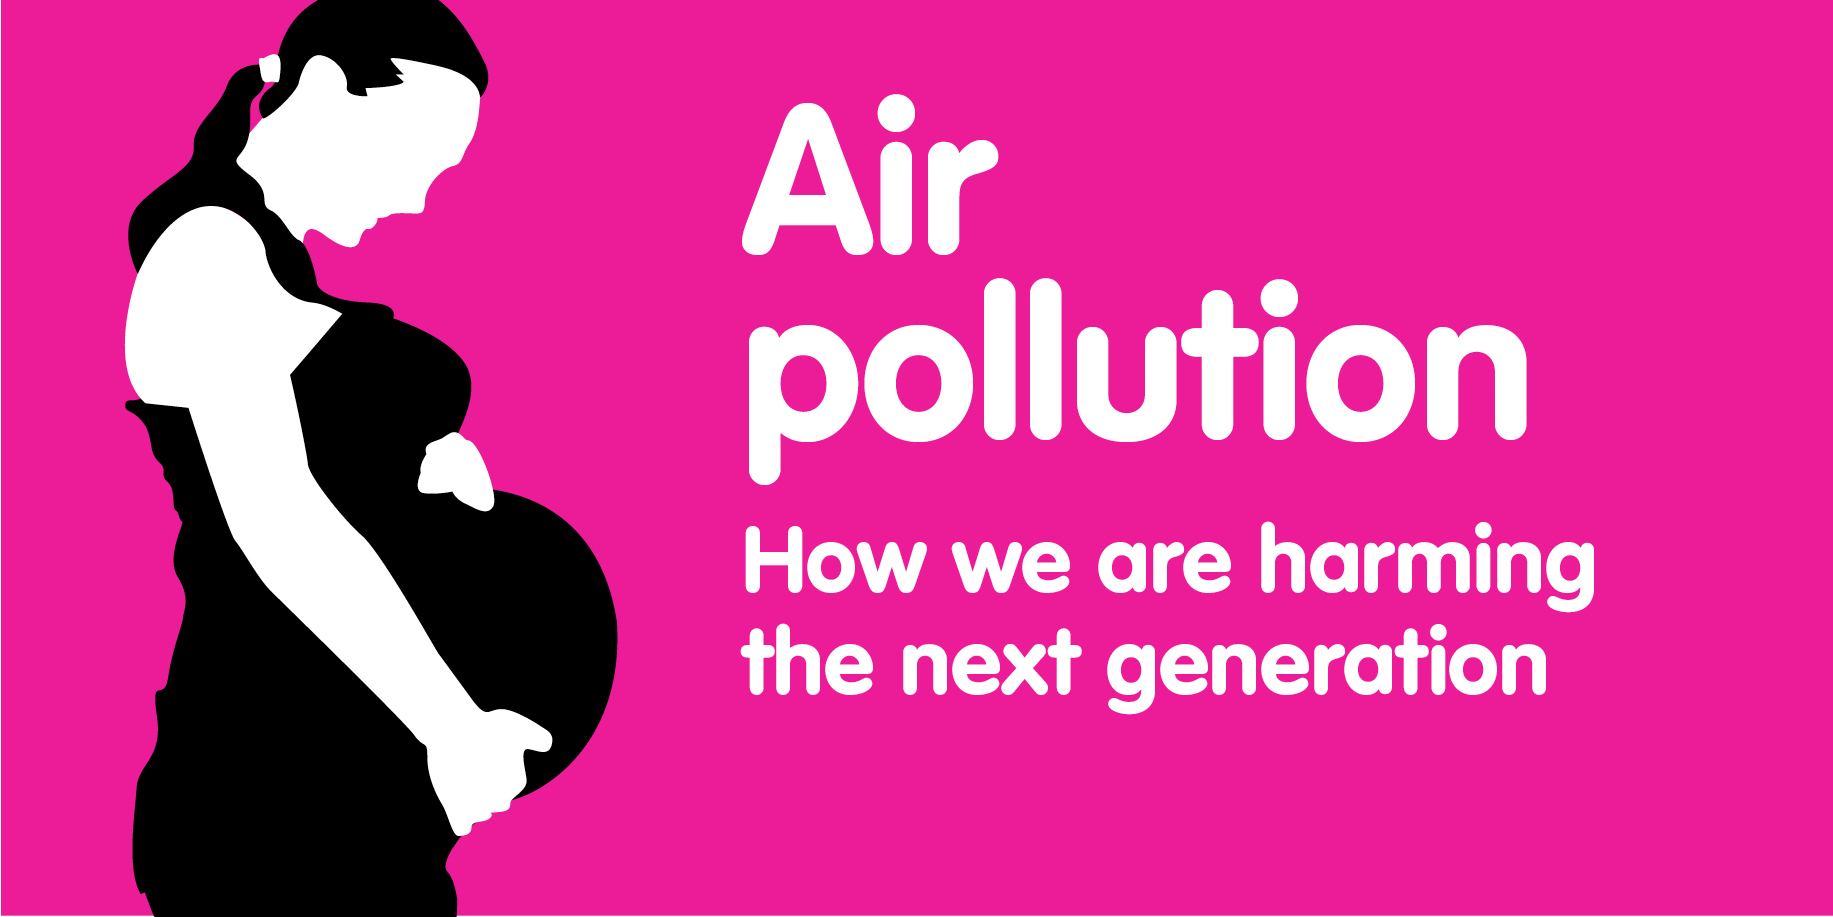 "An image of a pregnat woman and the text ""Air pollution, How are we harming the next generation"""